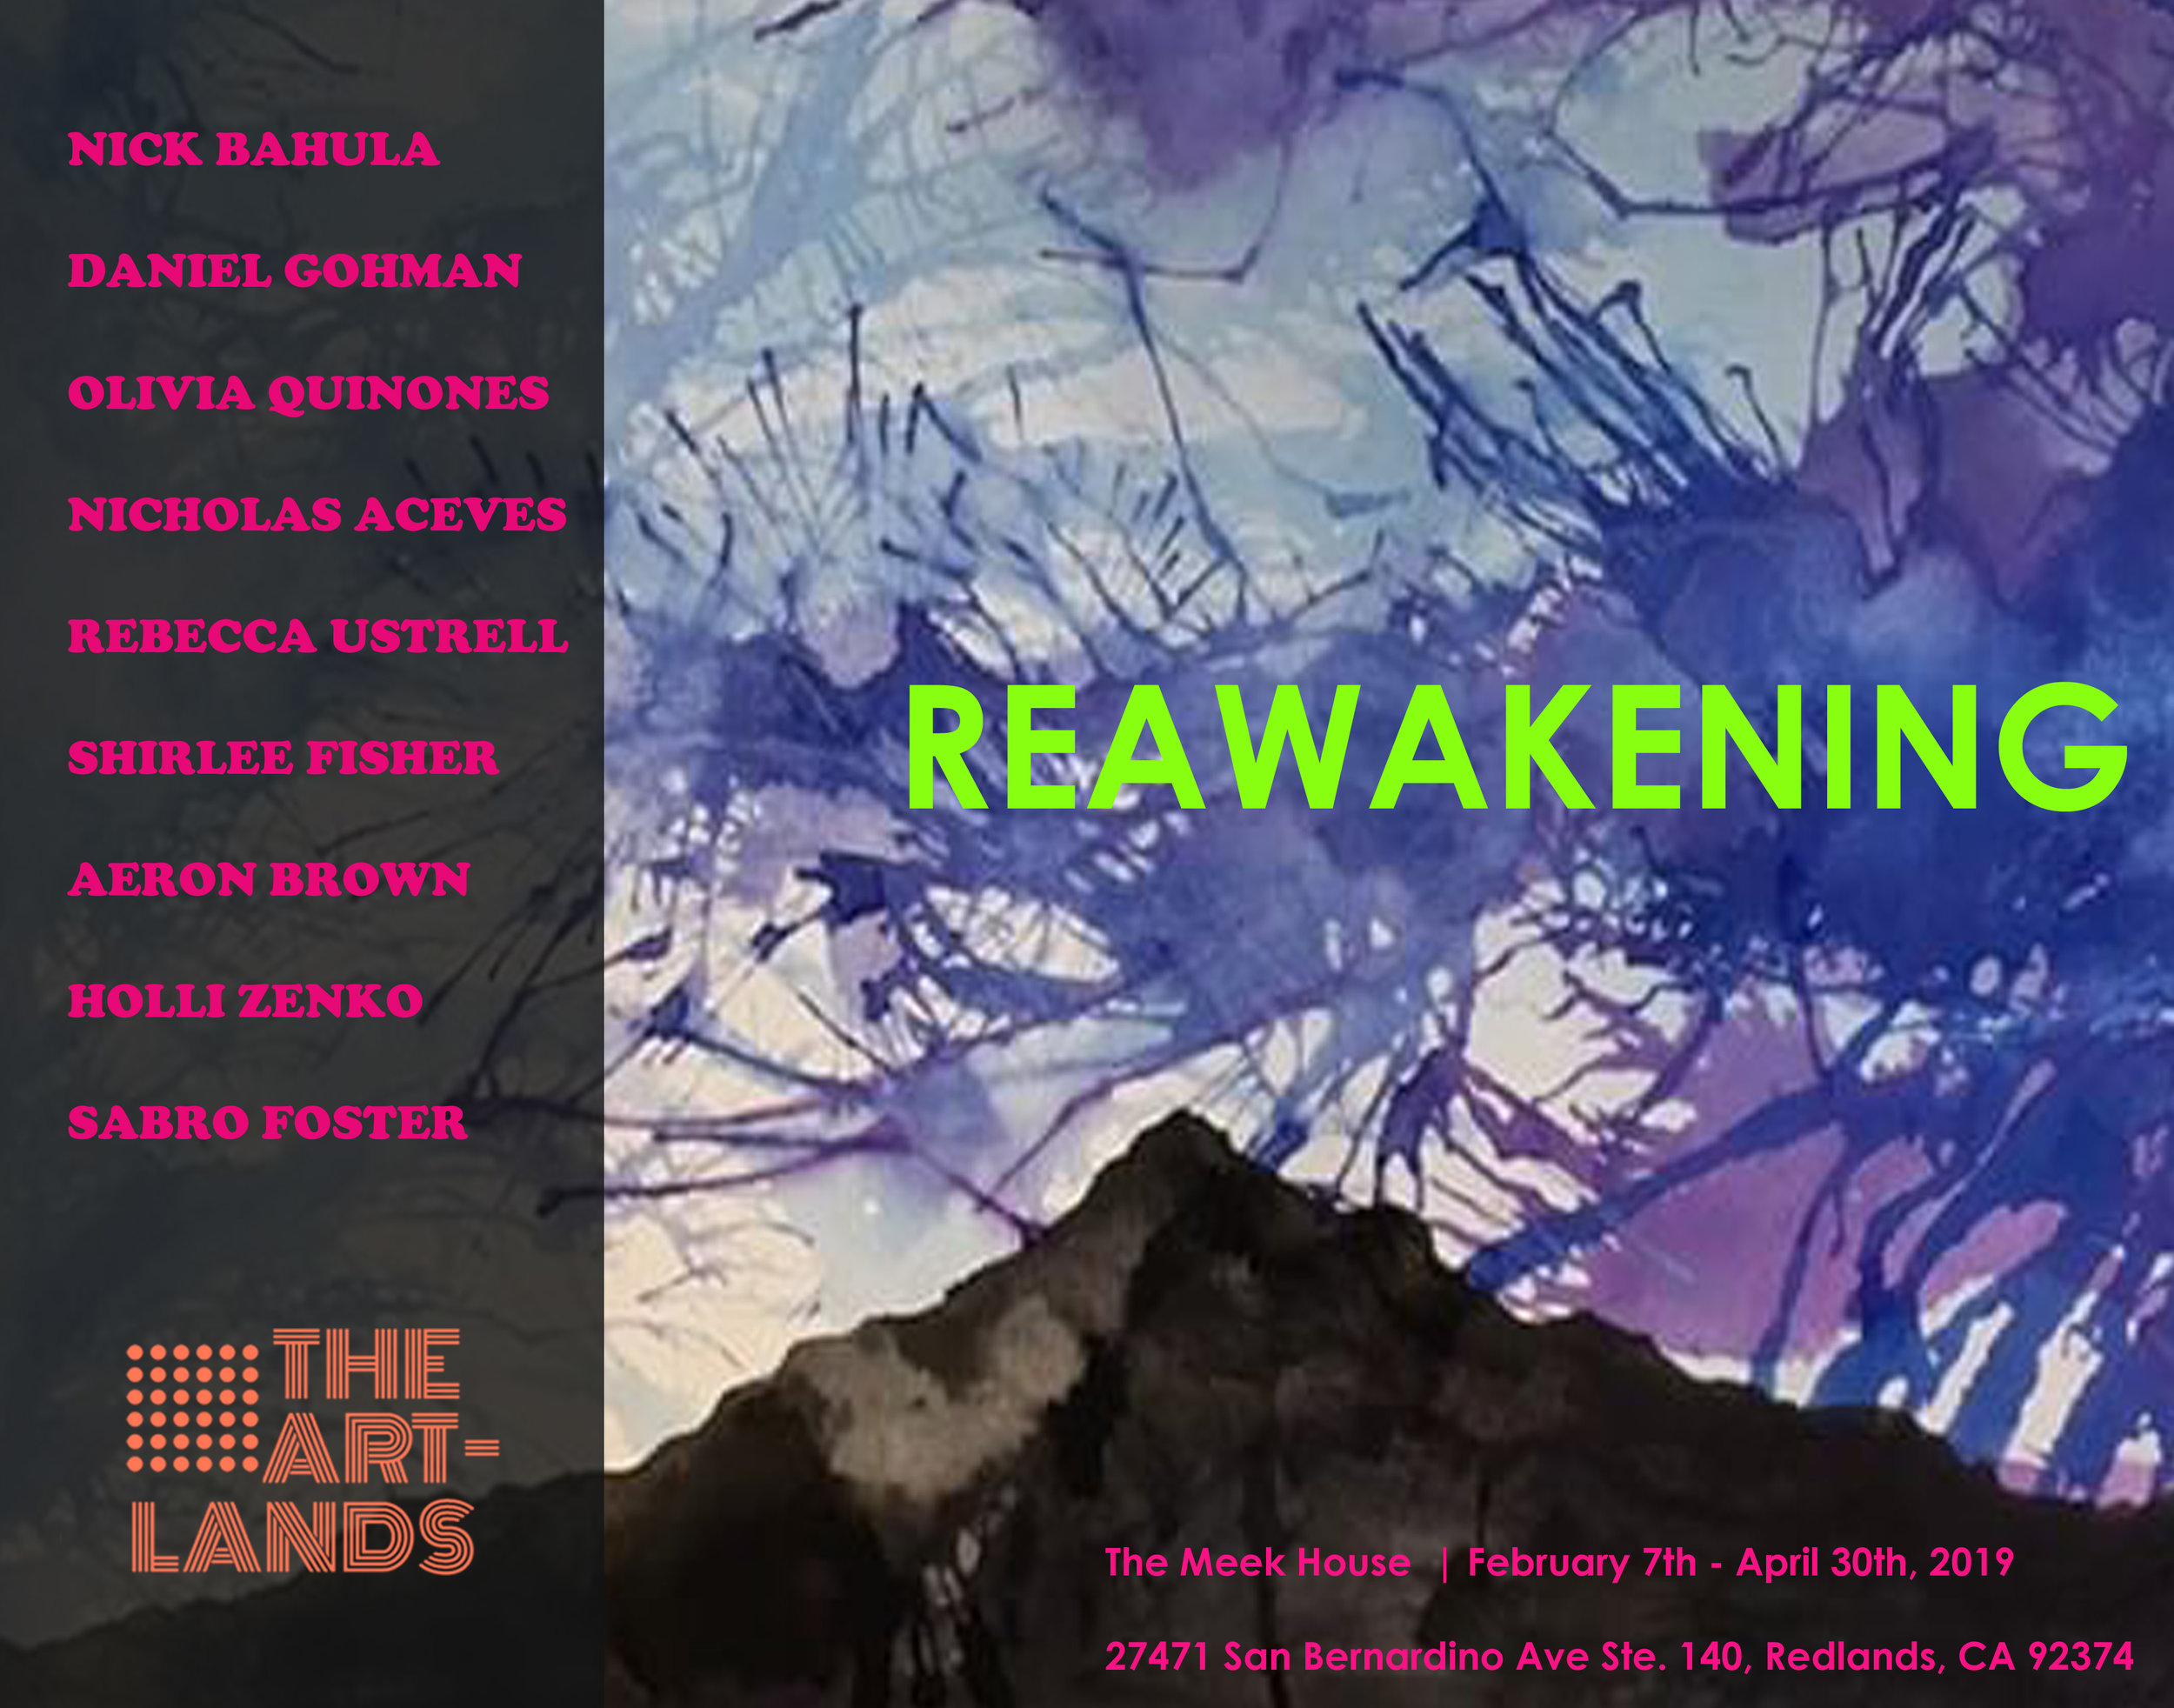 REAWAKENING - February 7 - April 30, 2019The Meek House27471 San Bernardino Ave. Ste. 140, Redlands, CA 92374